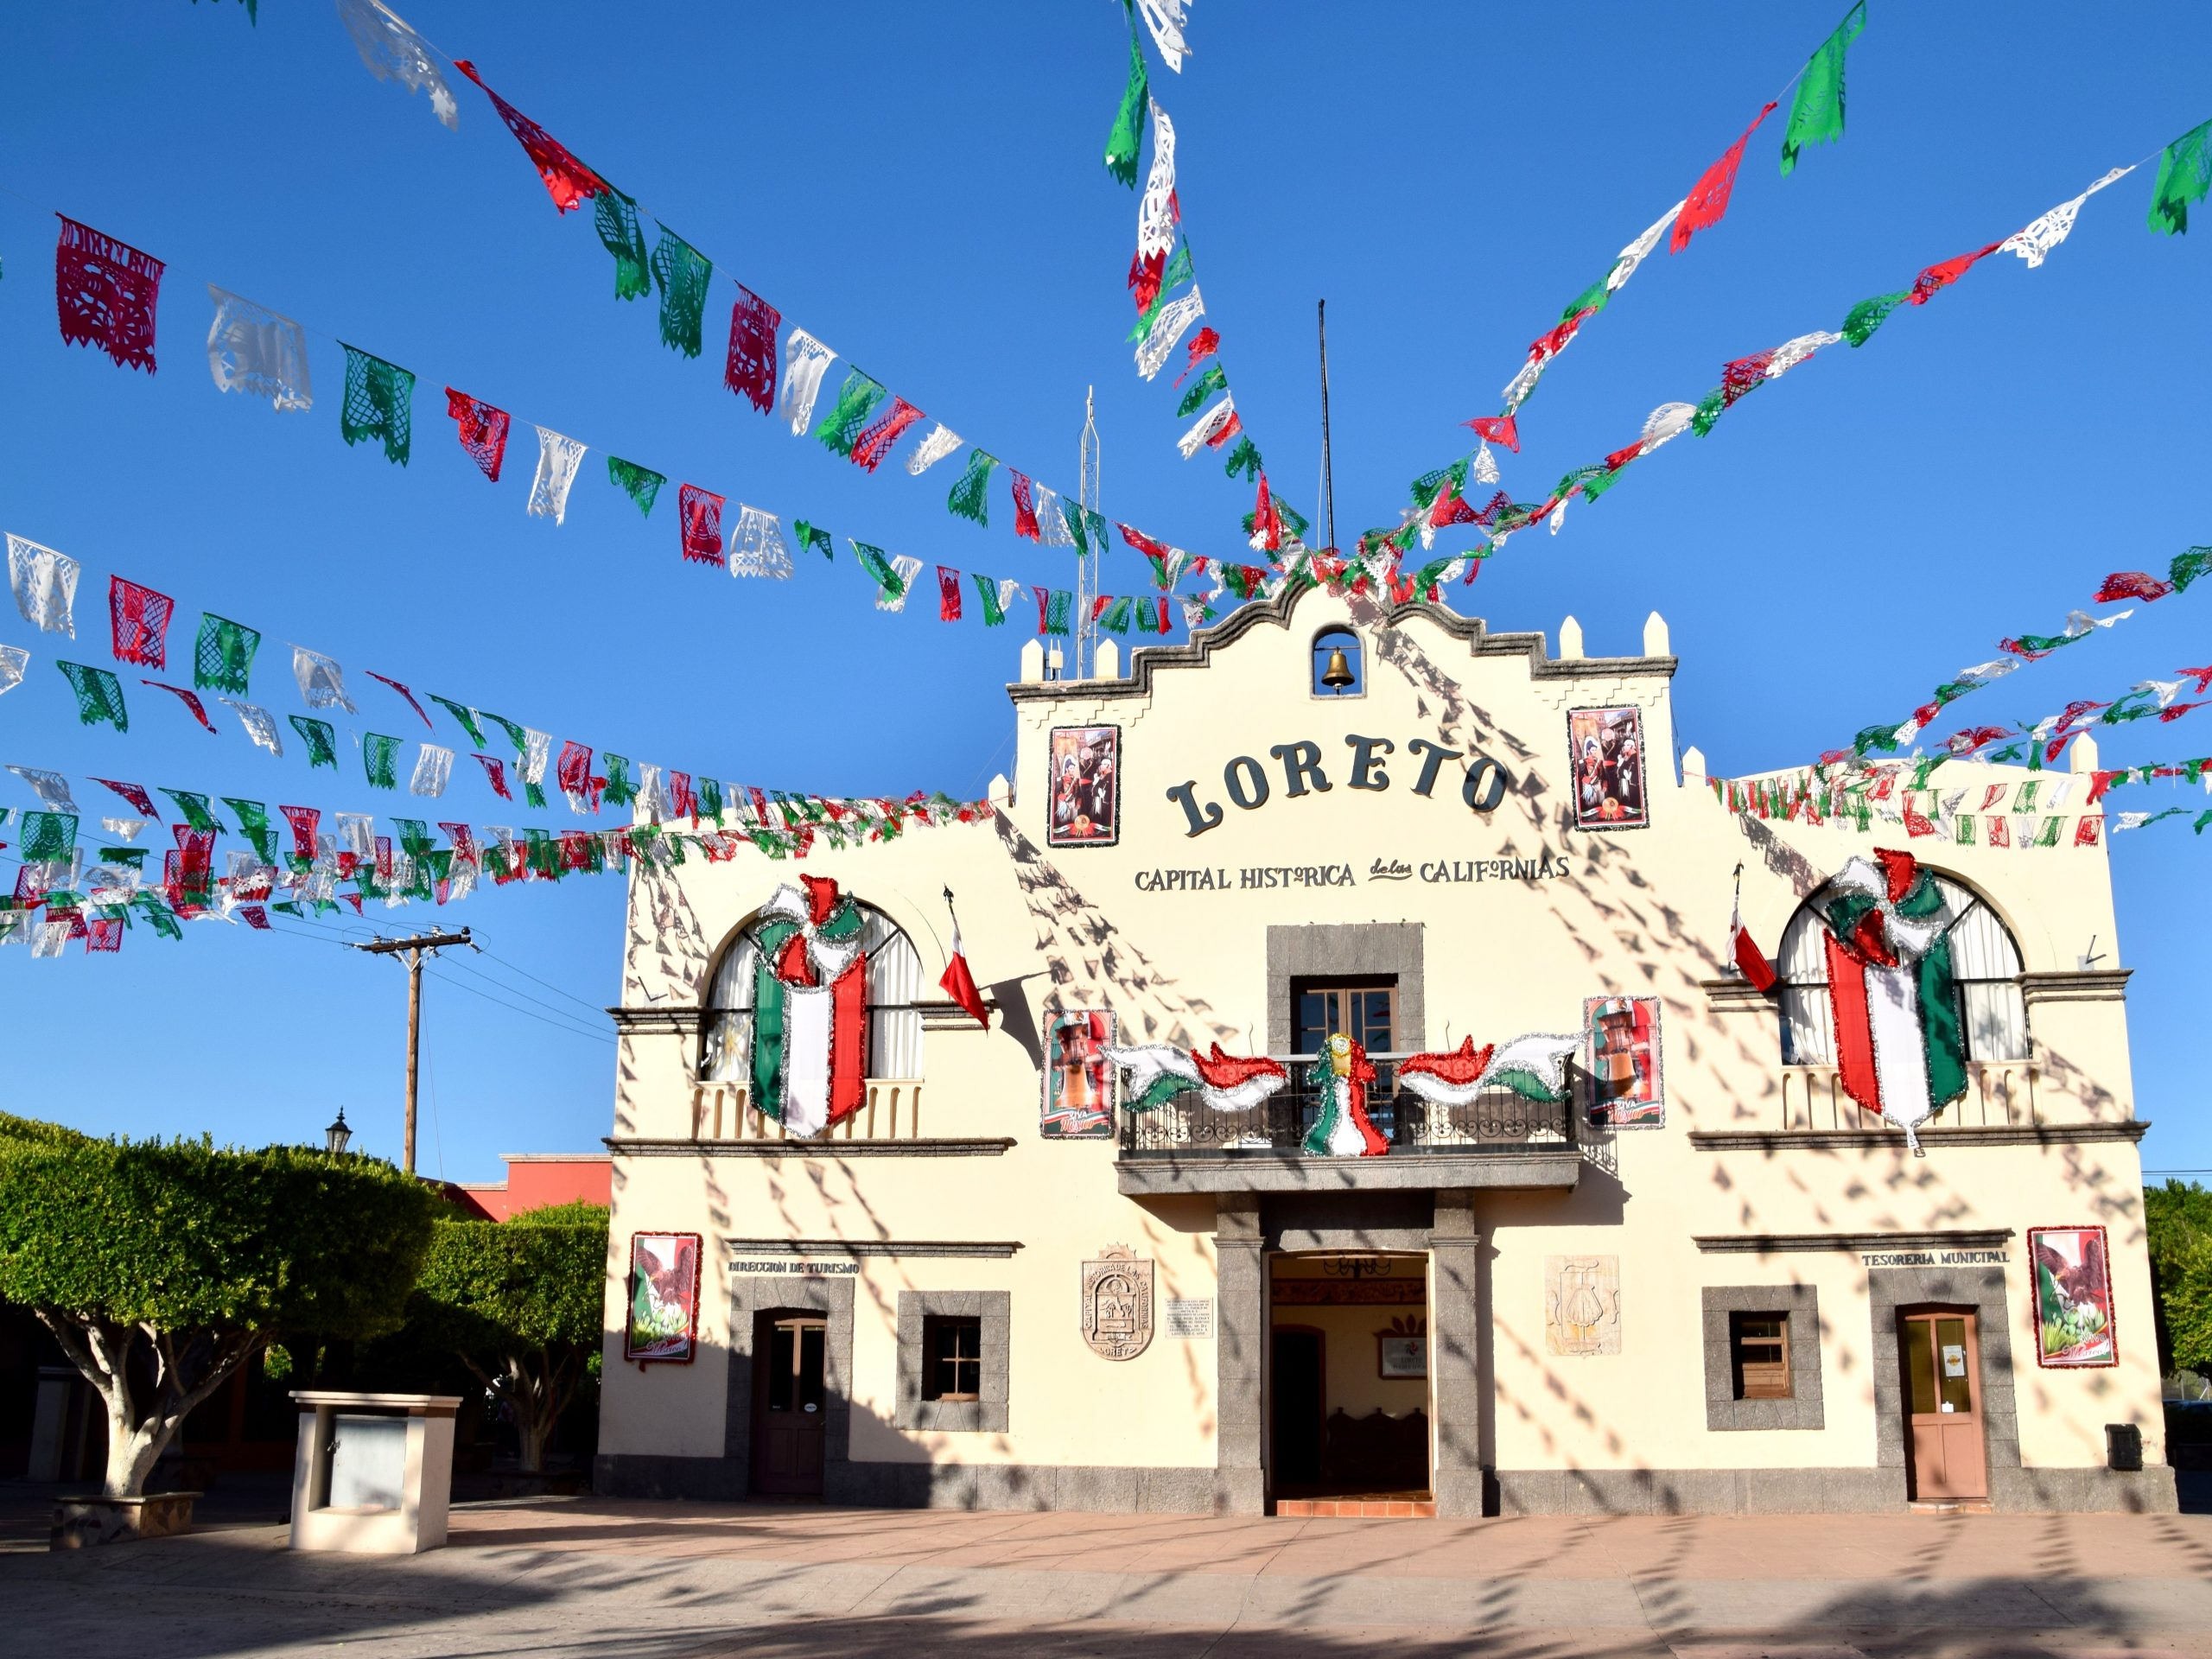 The town square and town hall building with colorful flags and bunting in Loreto, Baja California Sur, Mexico